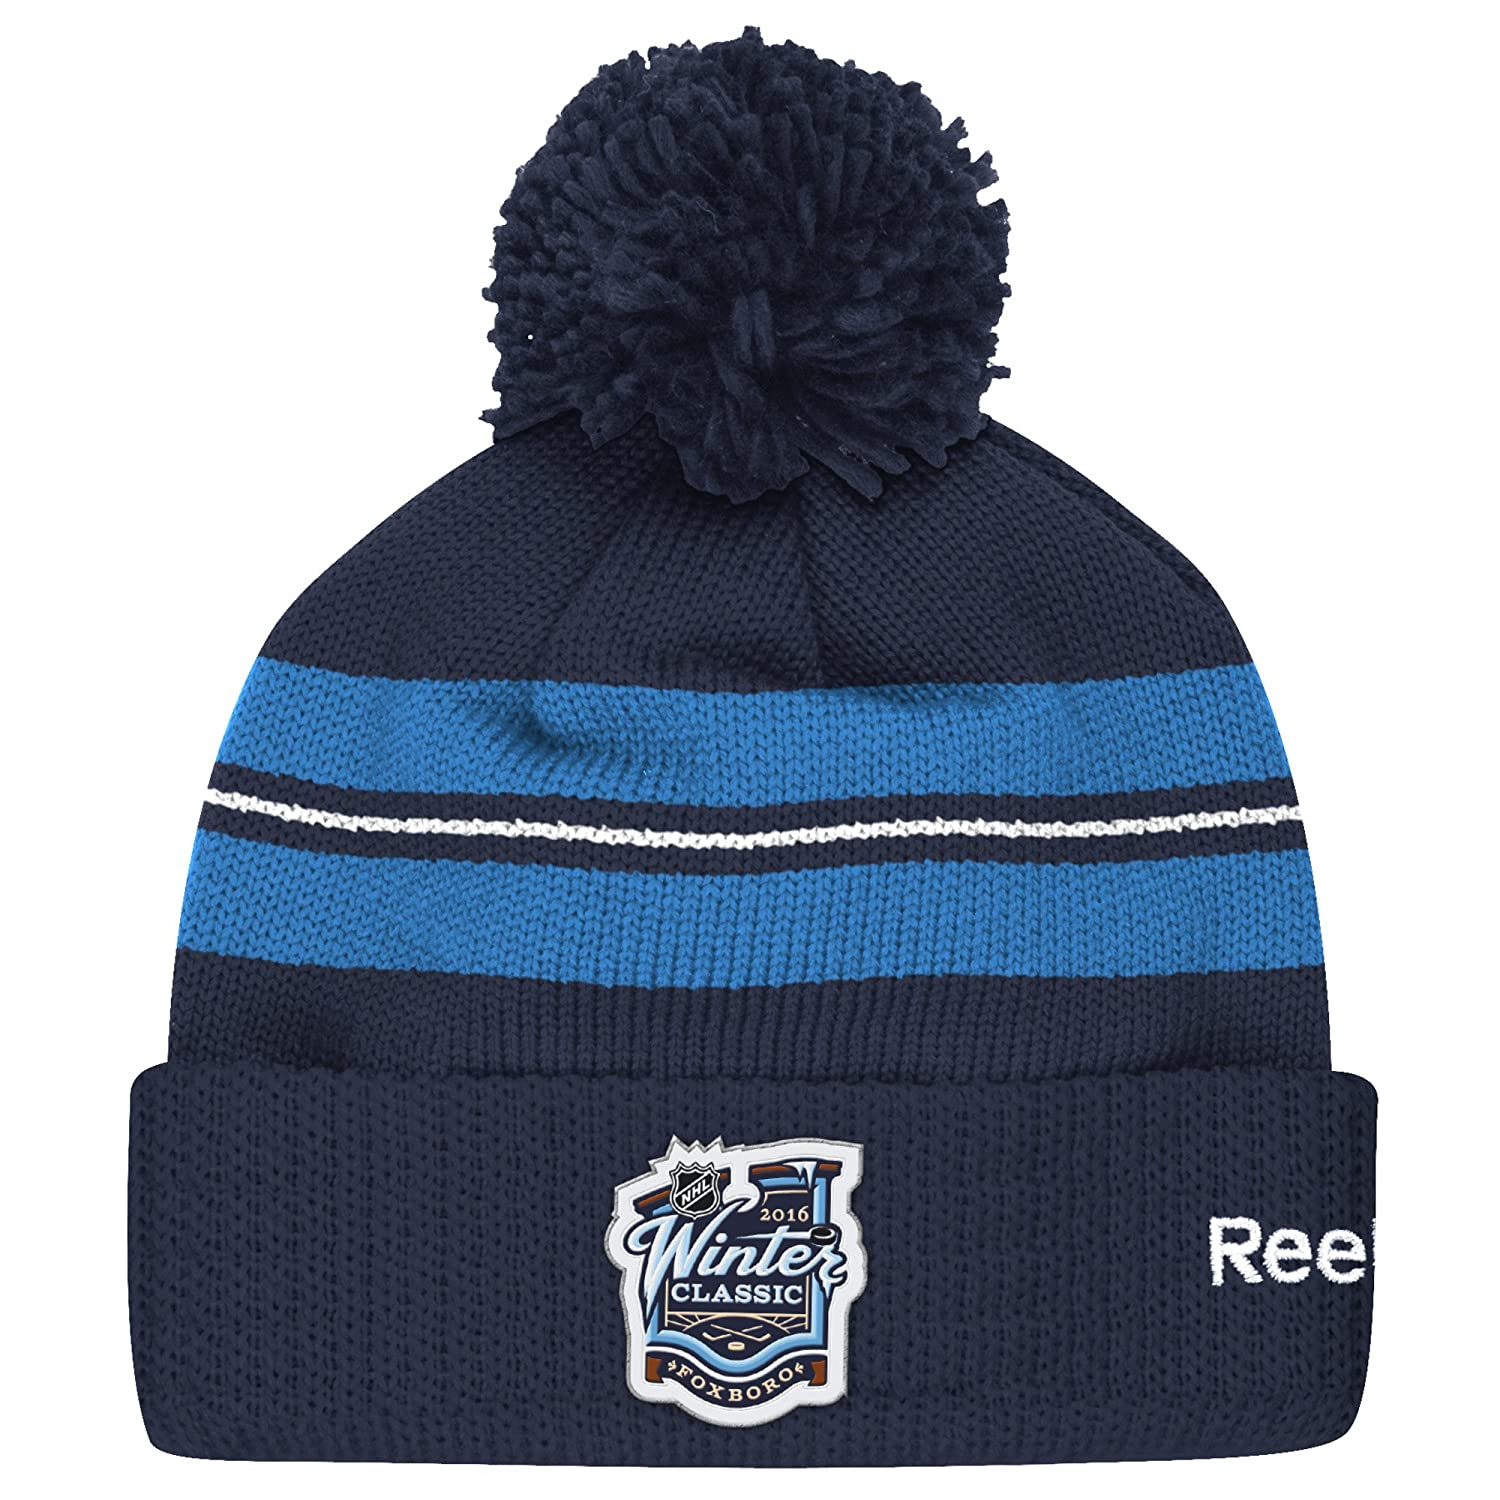 NHL Winter Classic Men's Pom Beanie One Size Navy